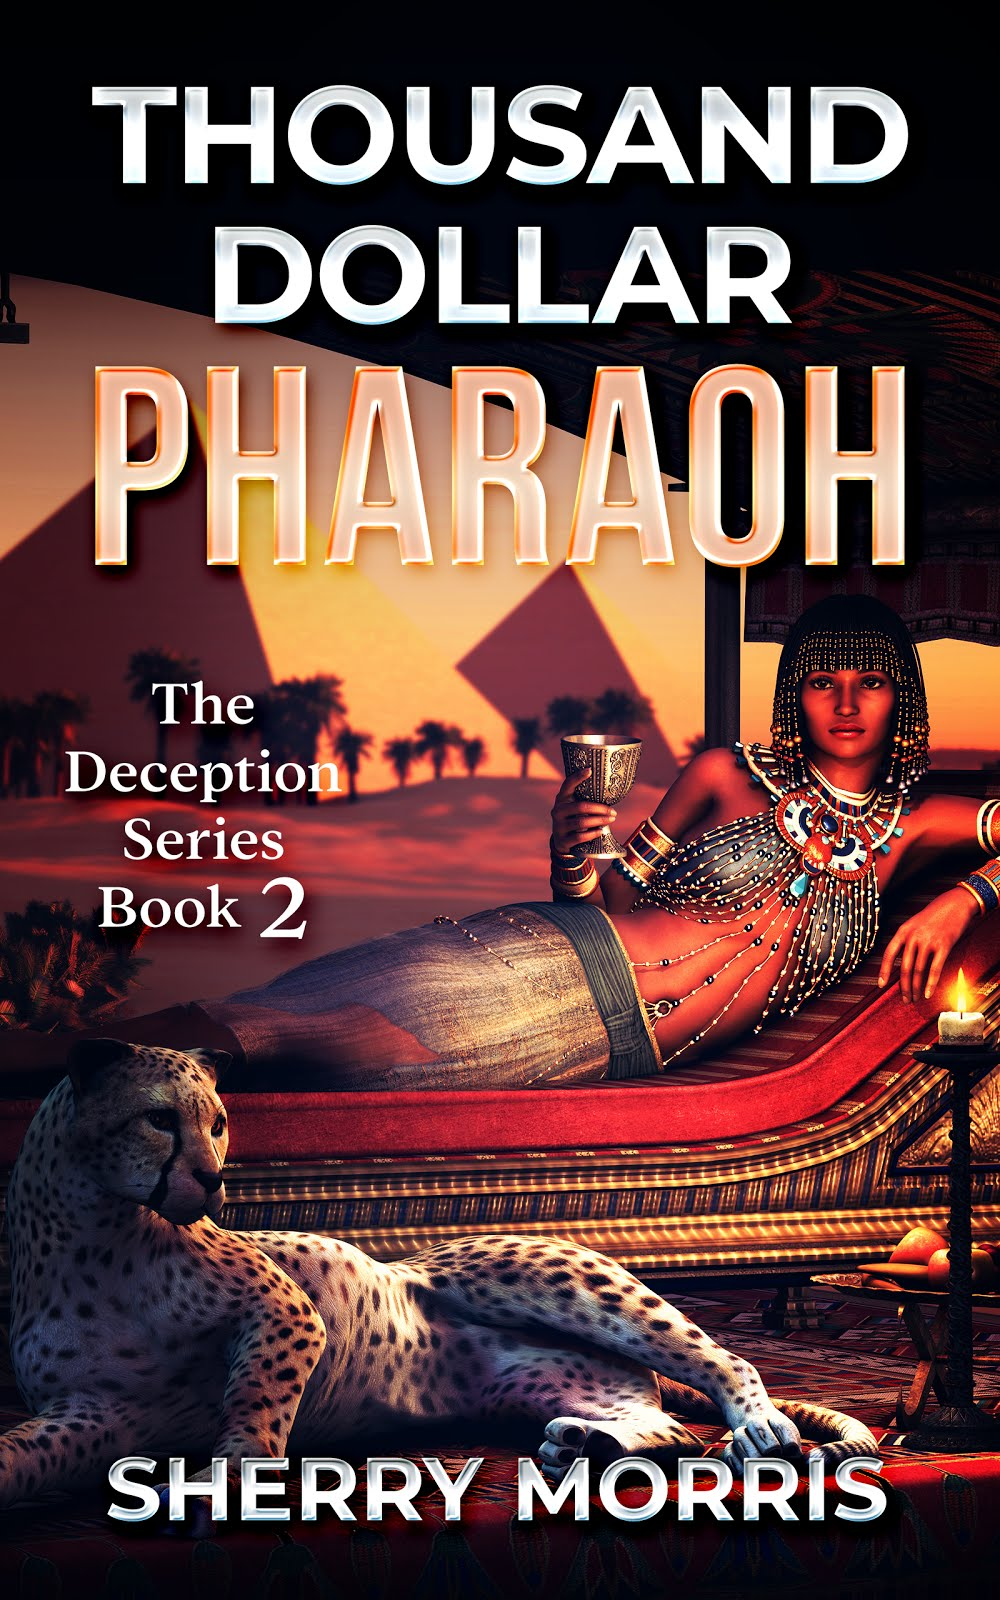 THOUSAND DOLLAR PHARAOH